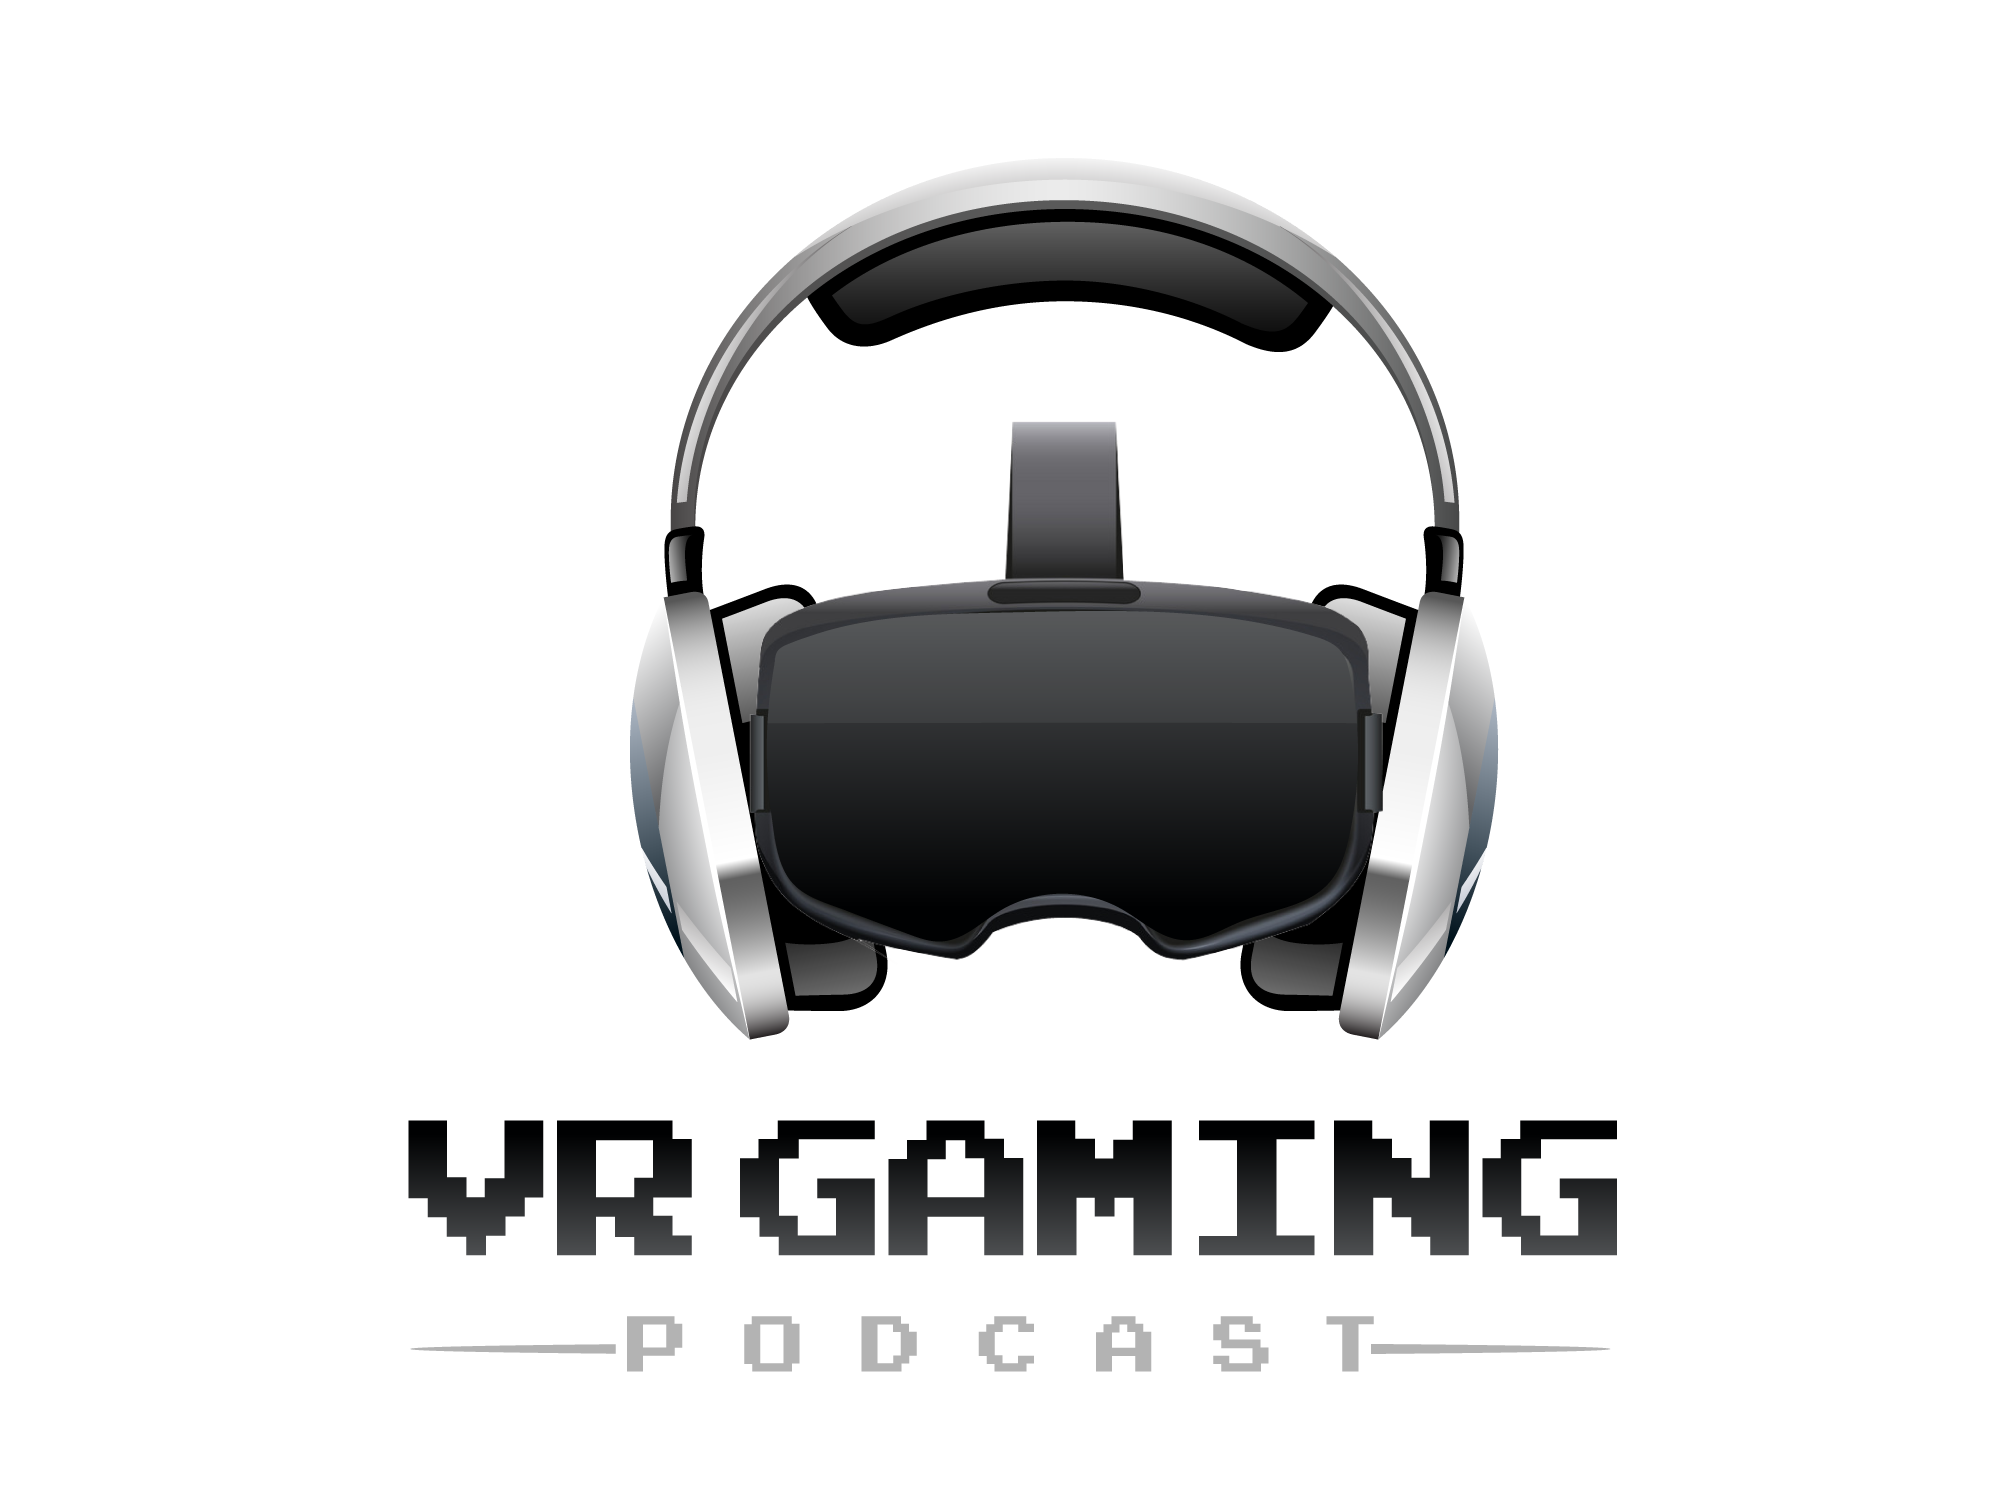 VR Gaming Podcast show image